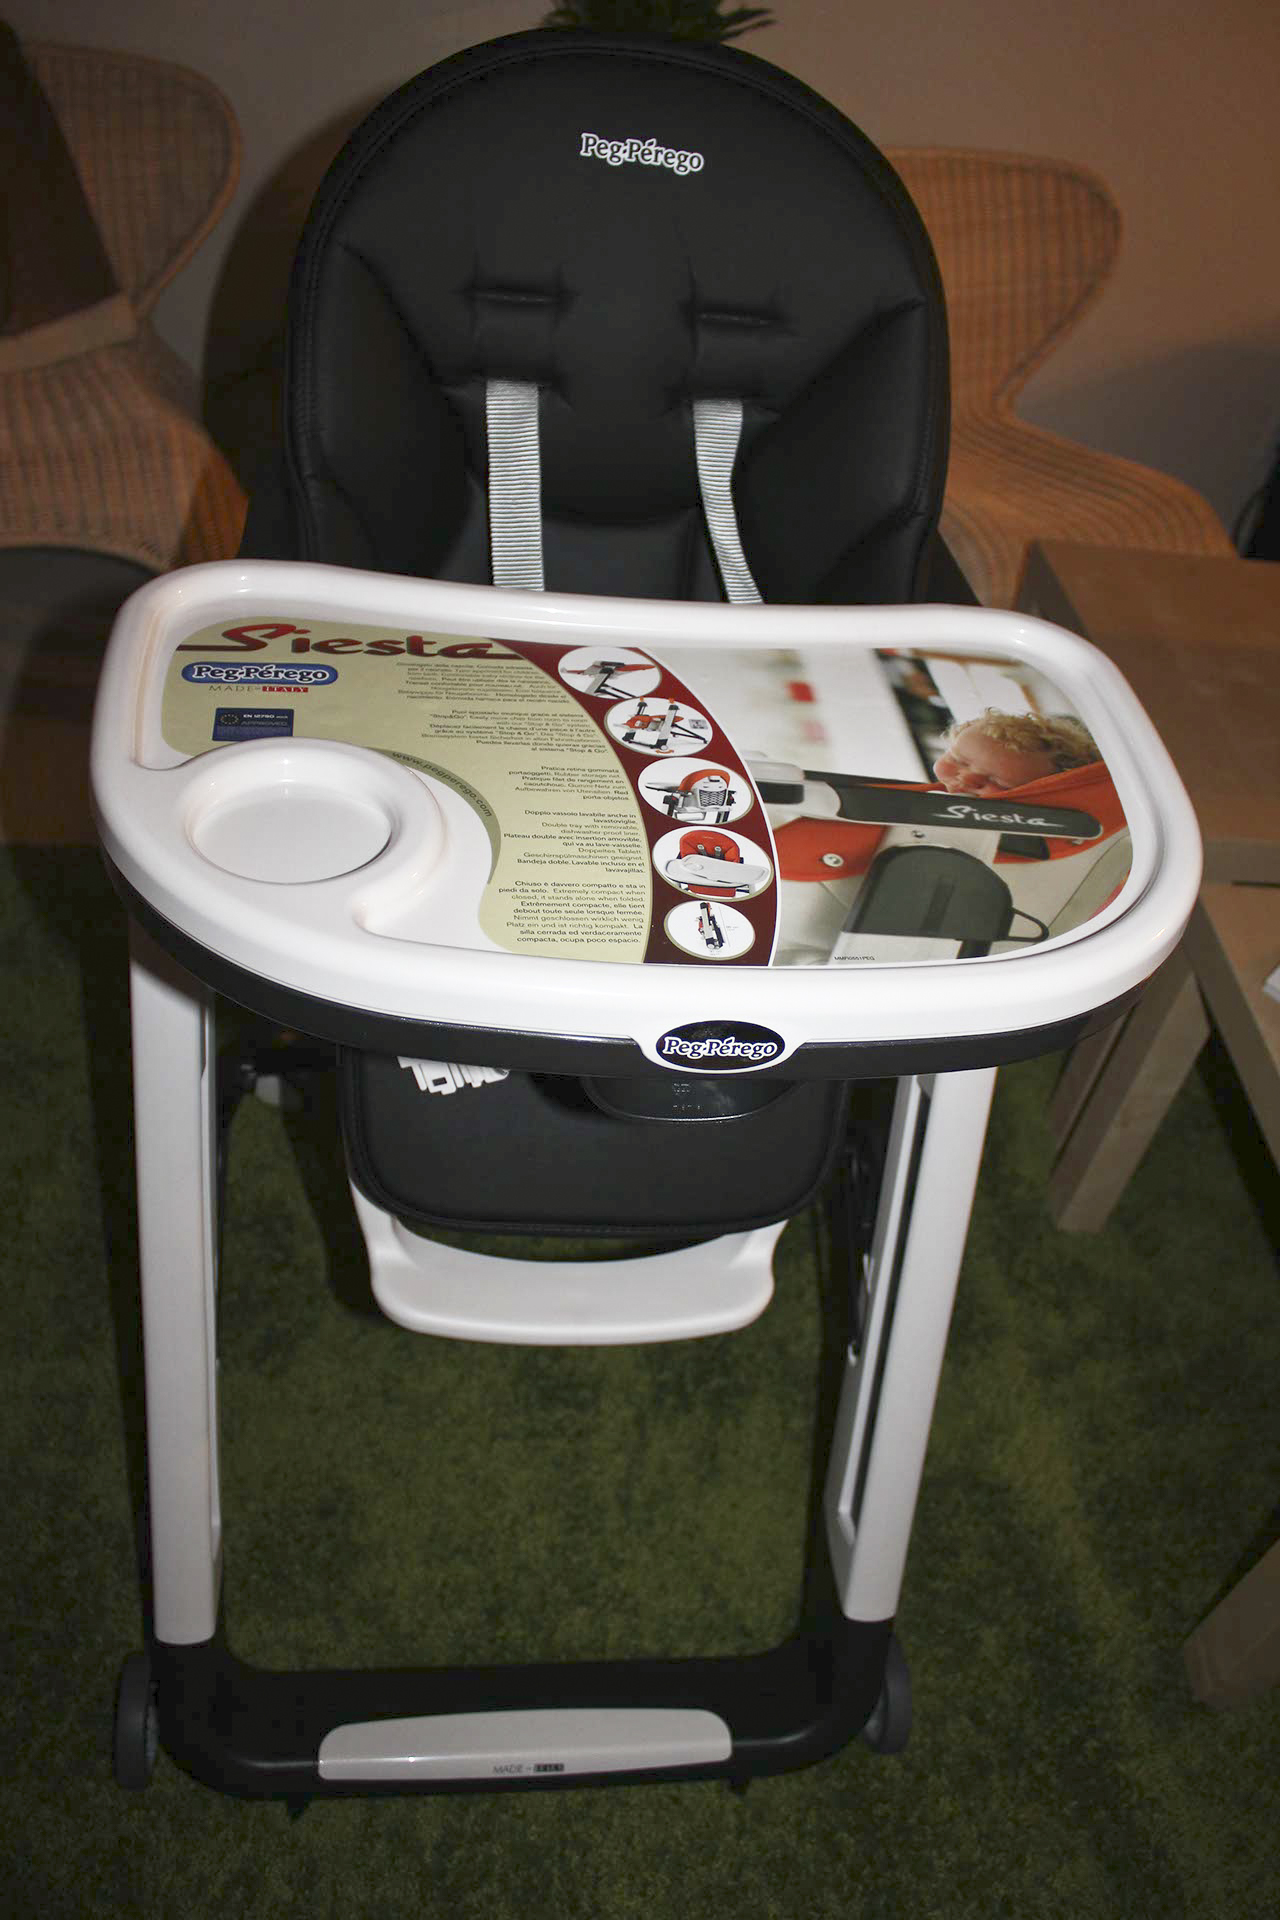 Perego High Chair Discover The New Peg Perego Siesta High Chair Bucket List